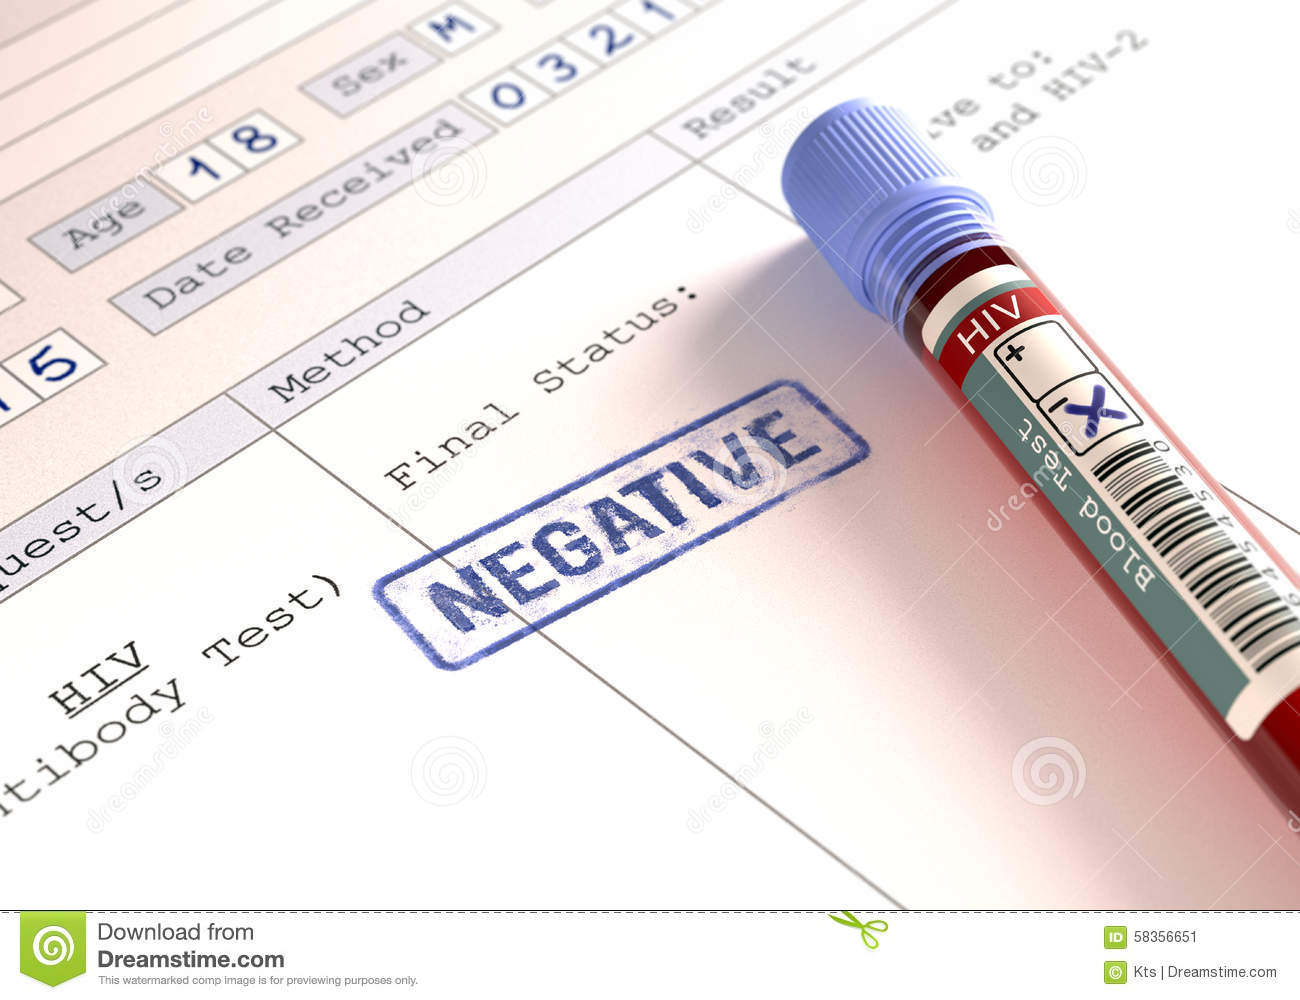 Hiv negative stock image image of infected medical - Test hiv periodo finestra ...